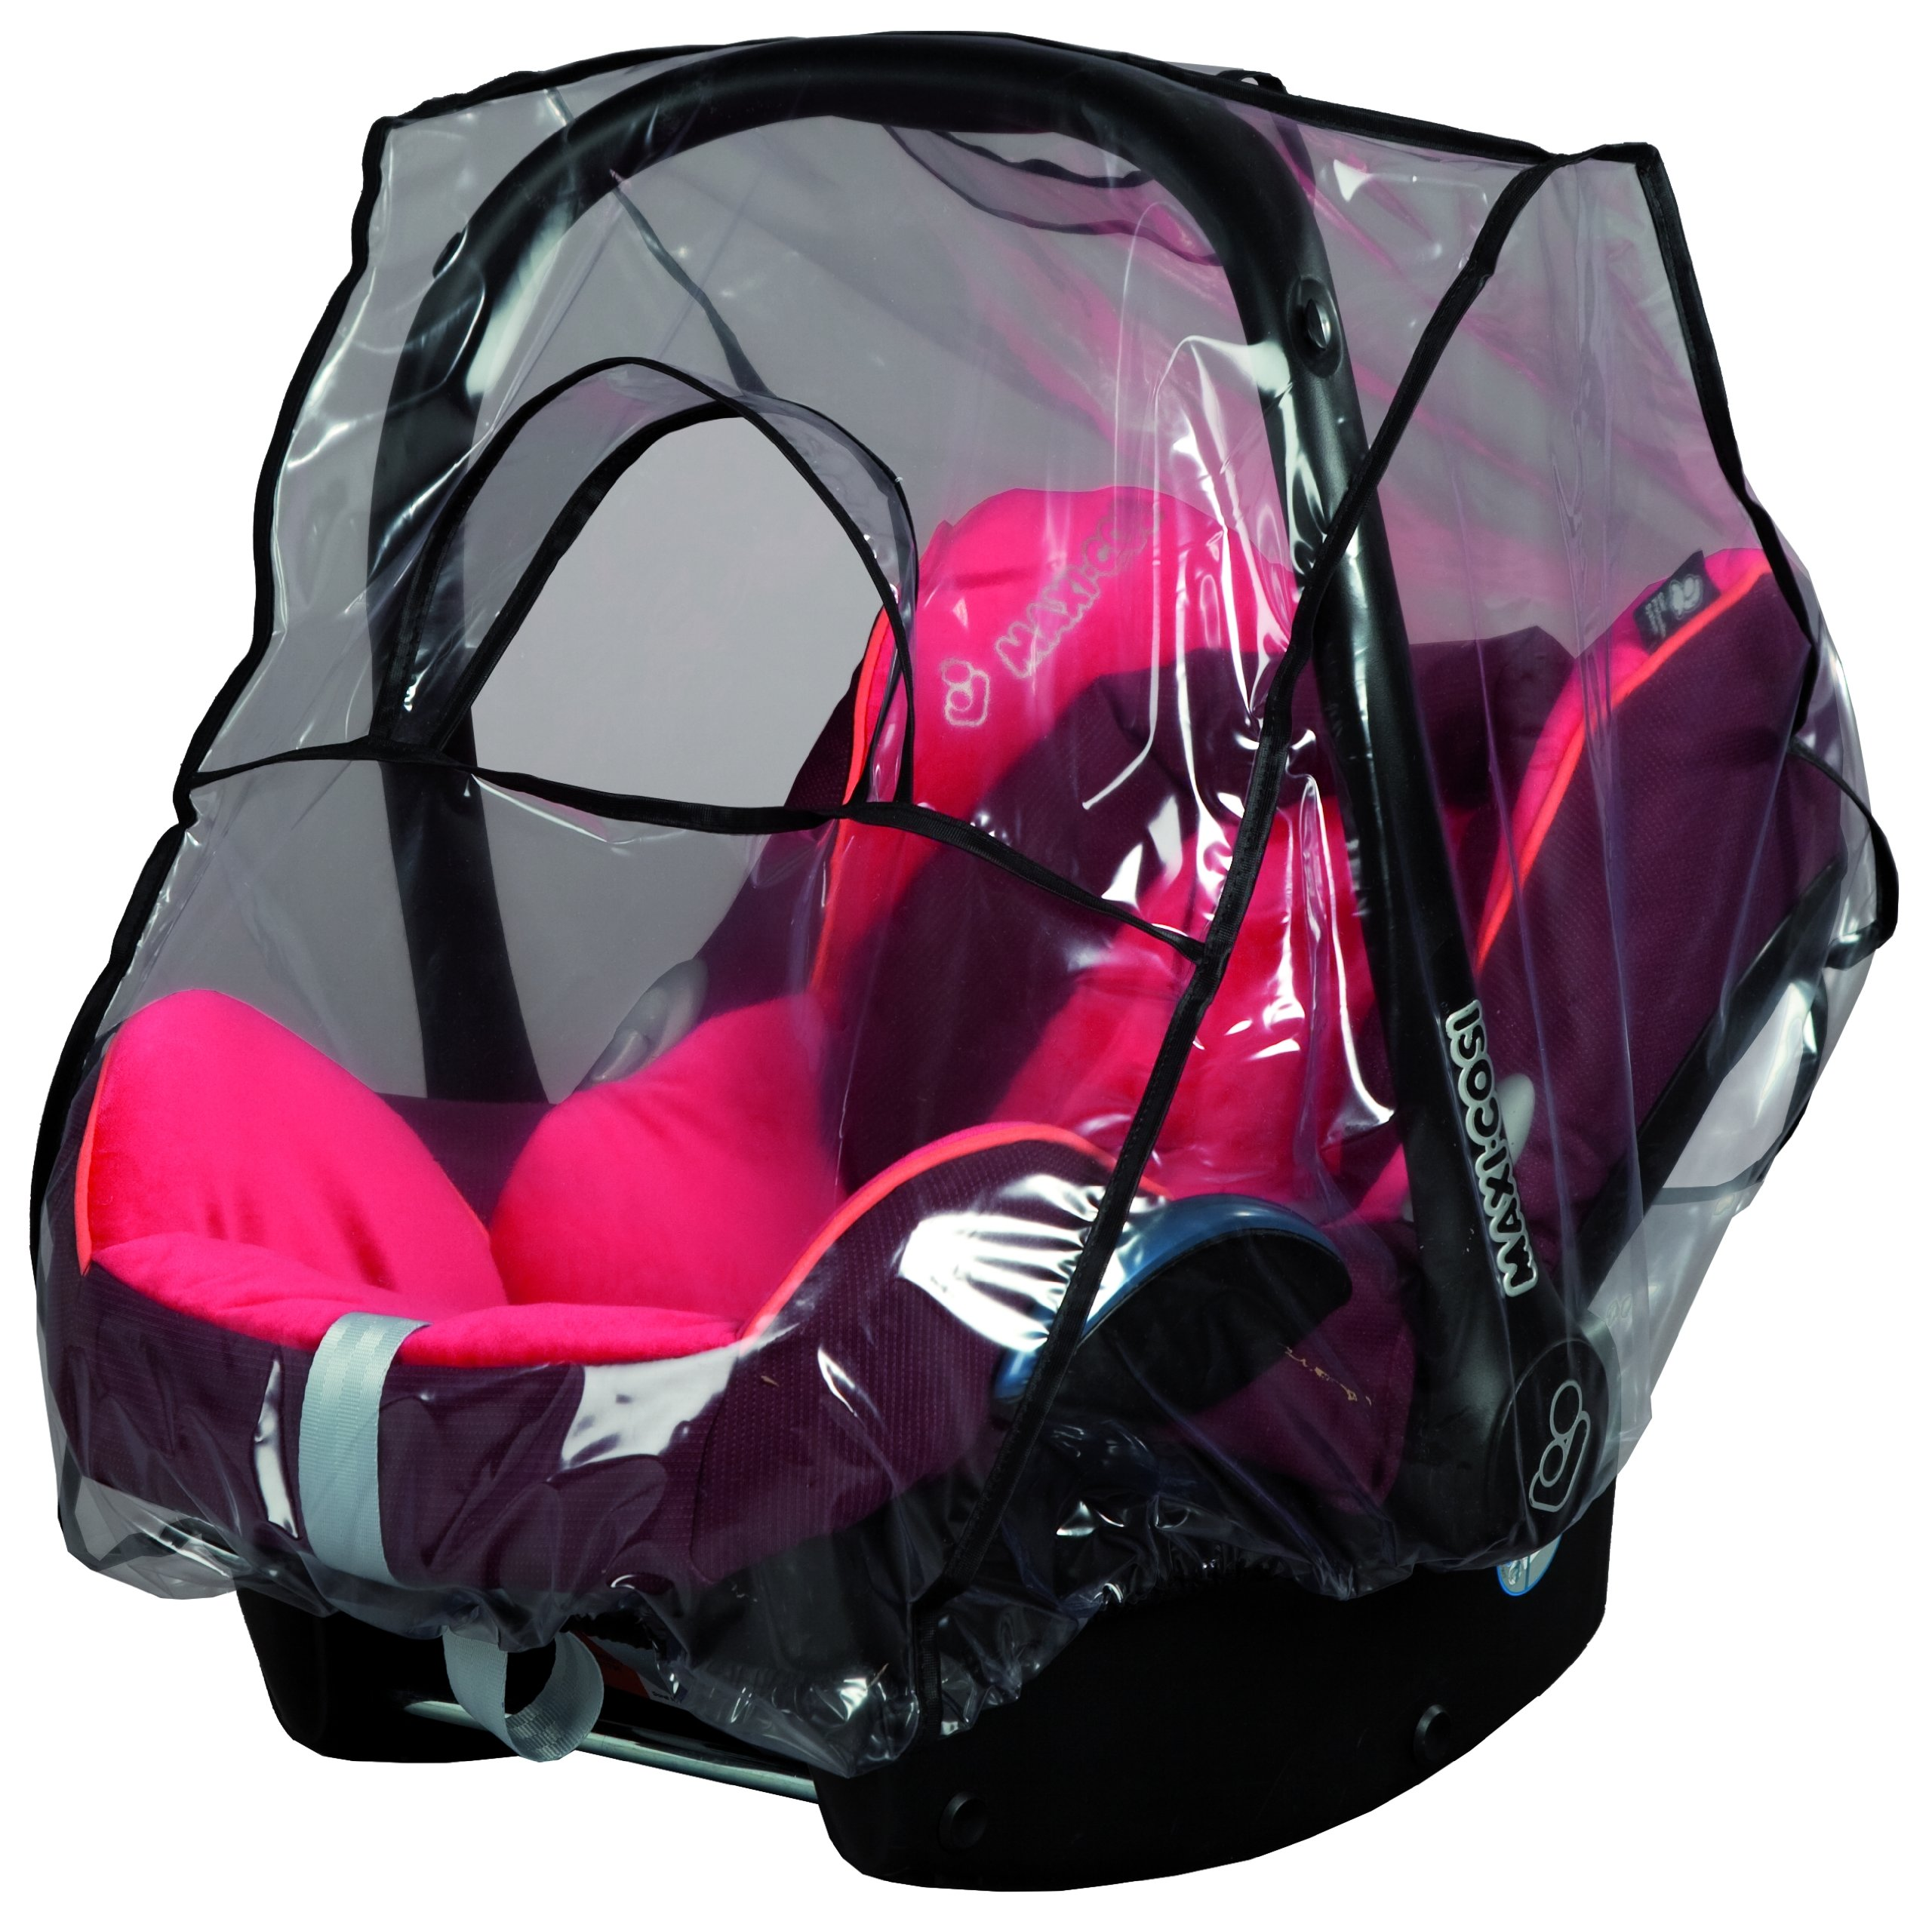 Sunnybaby Rain Cover for Baby Car Seat Group 0/0+ sunnybaby suitable for most of baby car seats group 0/0+ with window for fast and easy access to your child with rubber band for the quick installation 1